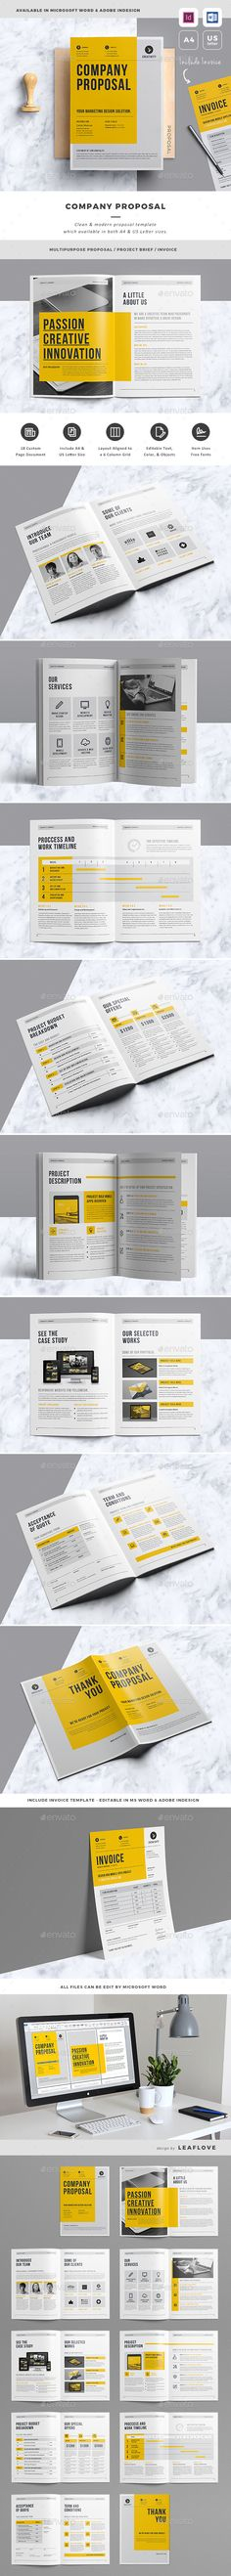 Clean Inbound Marketing Proposal u2014 InDesign Template #seo - project manual template